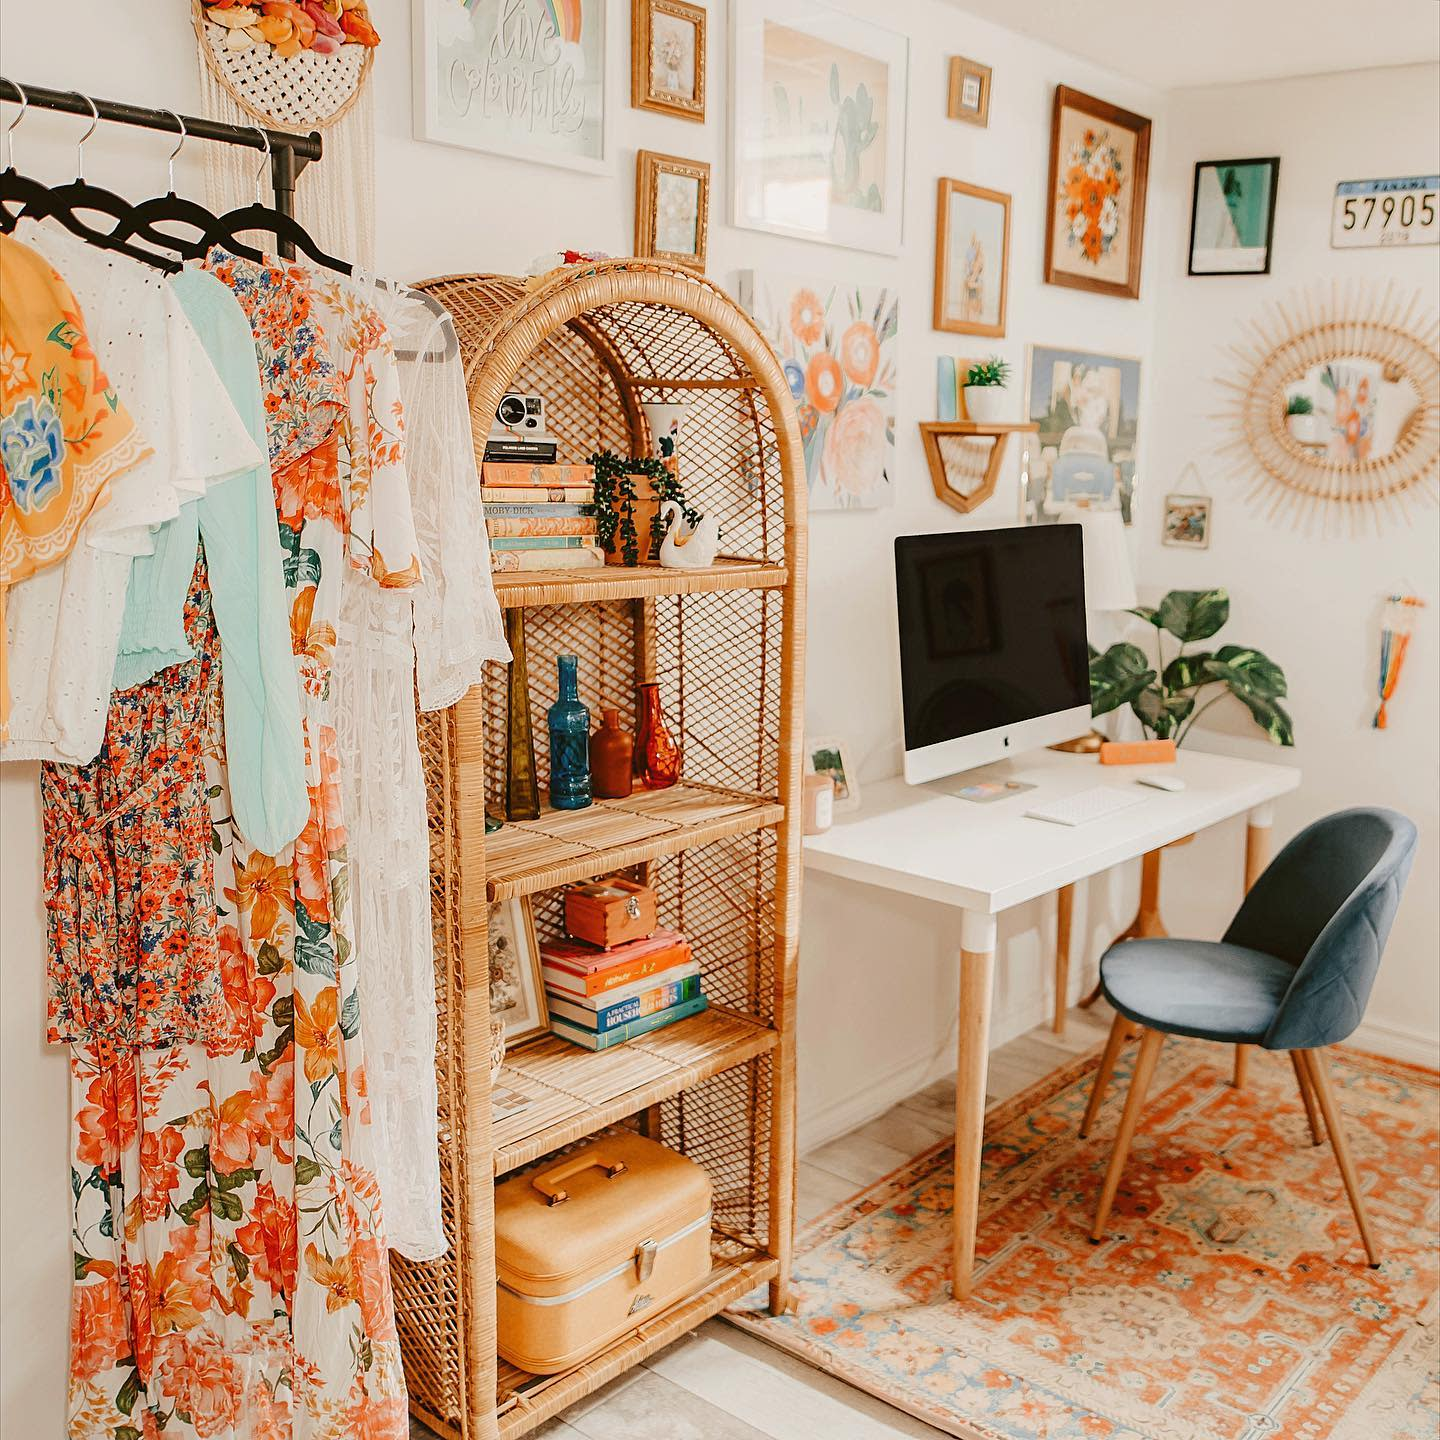 boho-aesthetic-room-ideas-teee-elizabeth